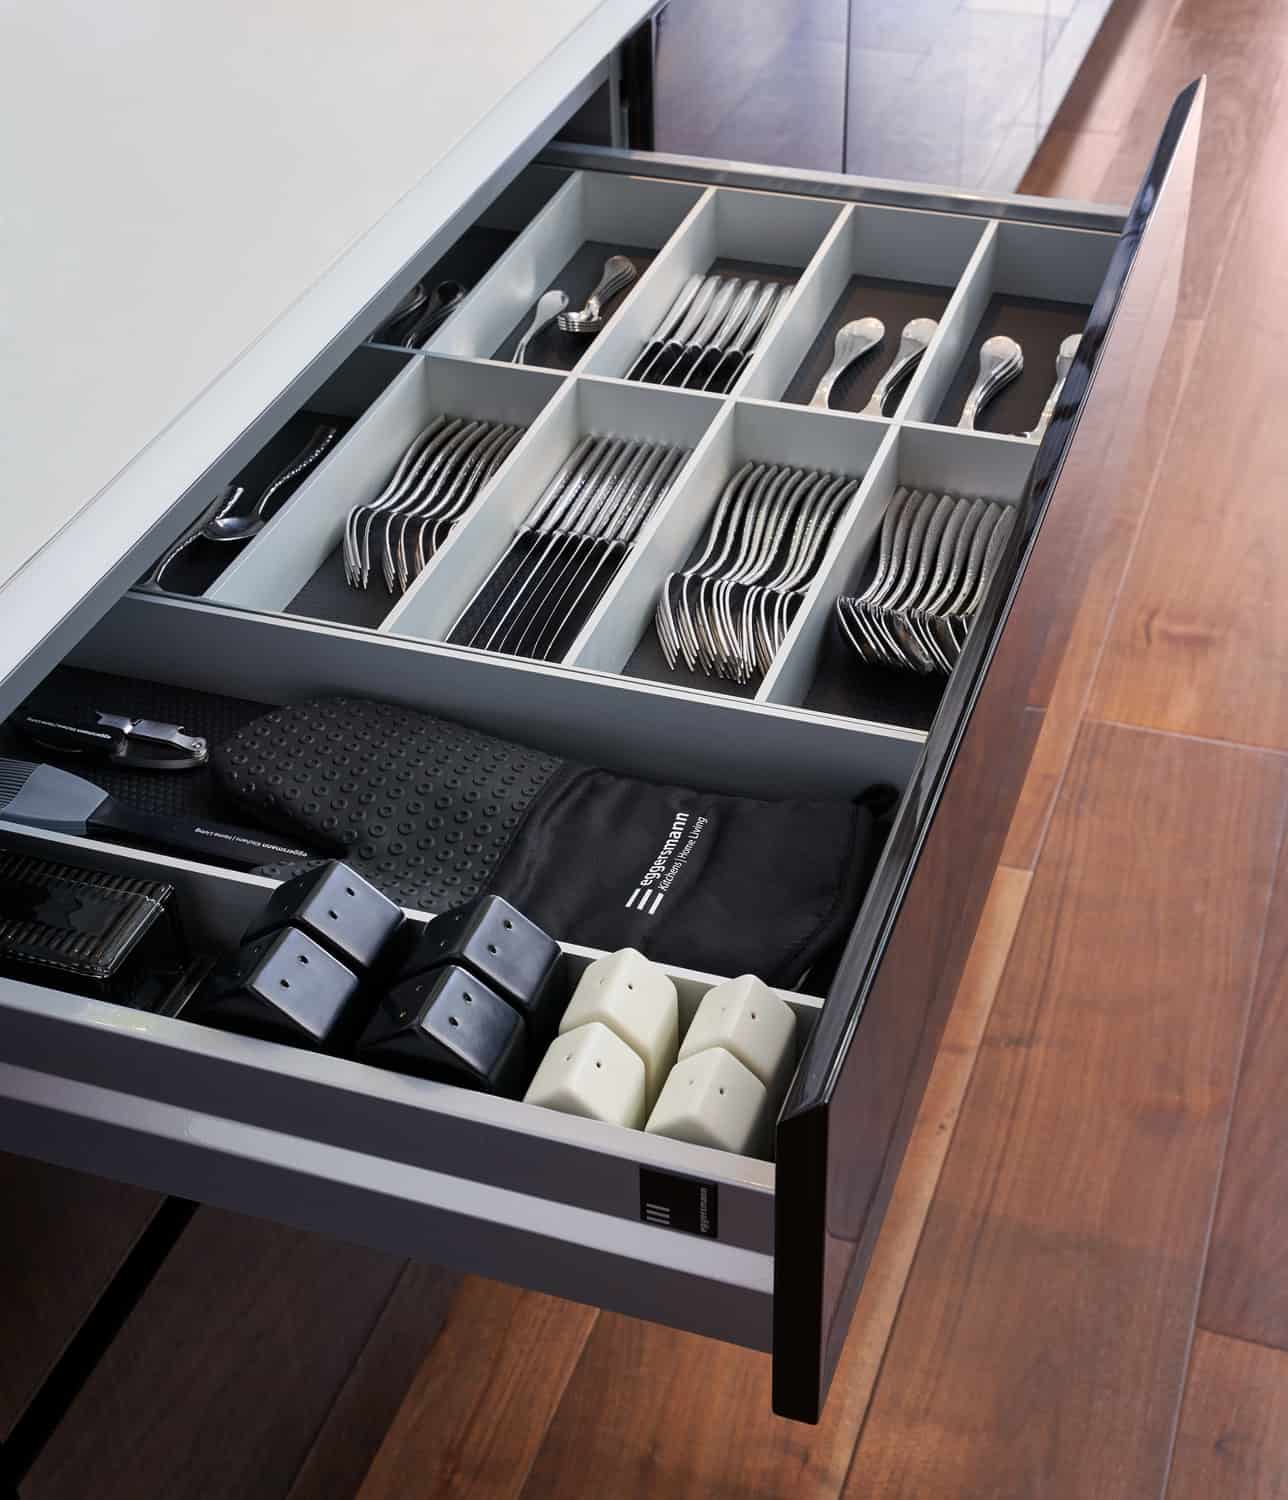 Boxtec drawer accessories for perfect organization